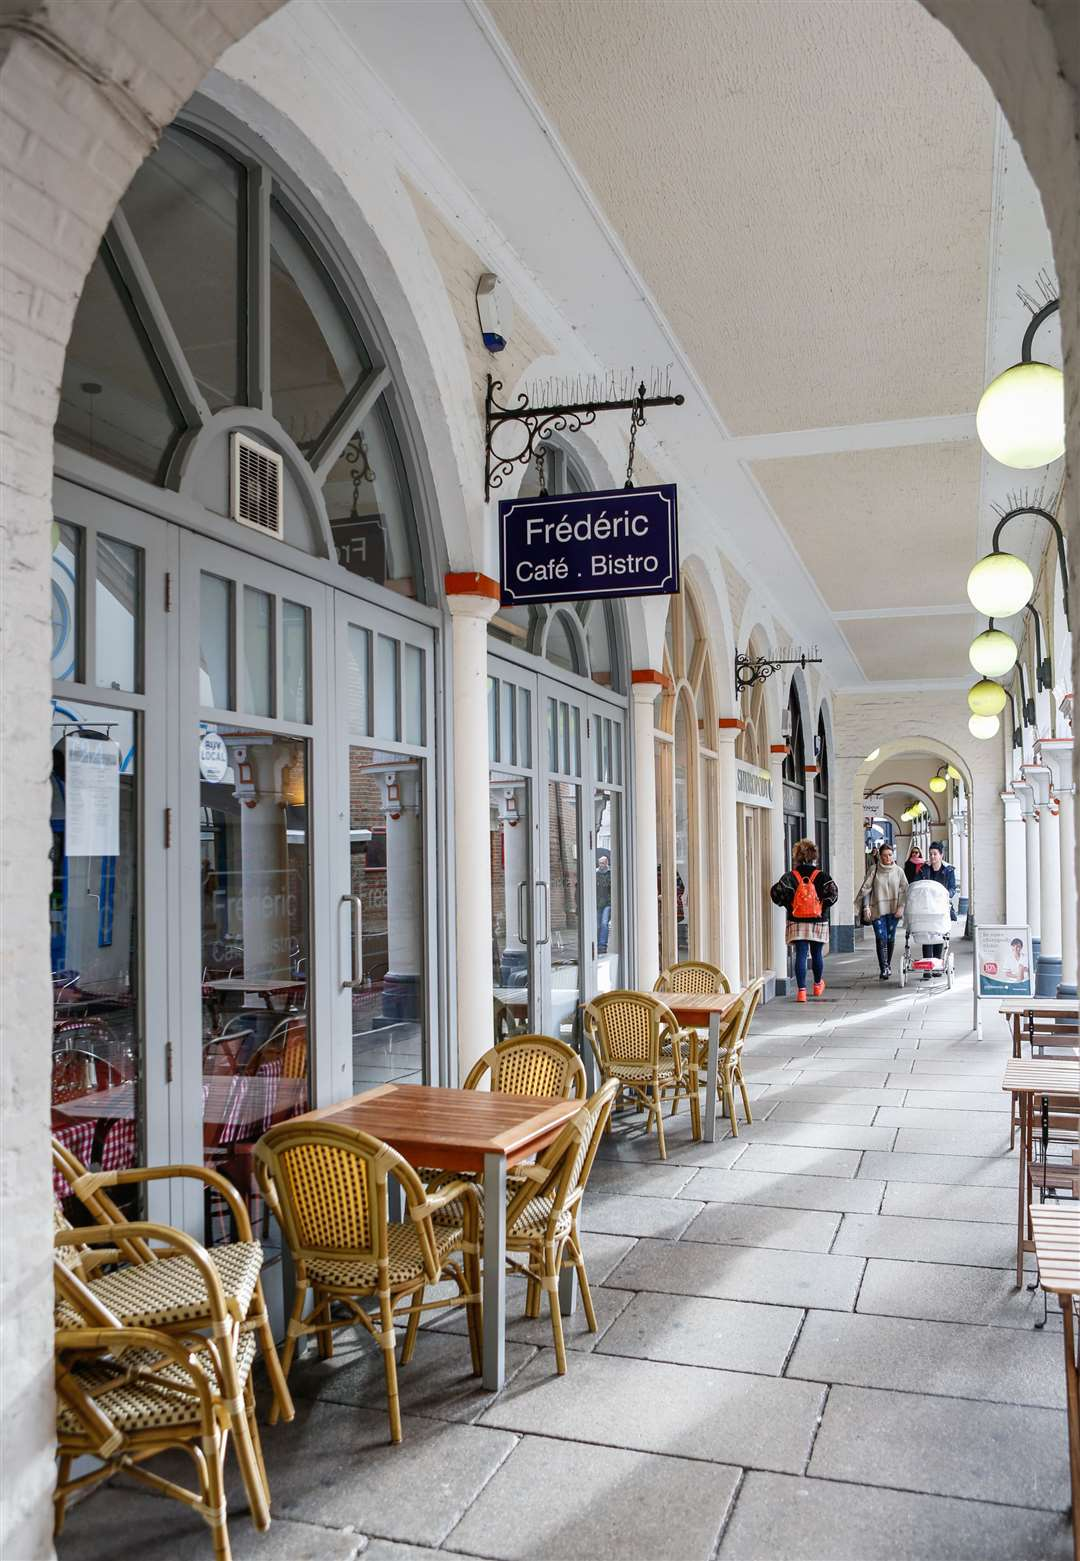 Frederic Cafe Bistro in Market Buildings, Maidstone. Picture: Matthew Walker